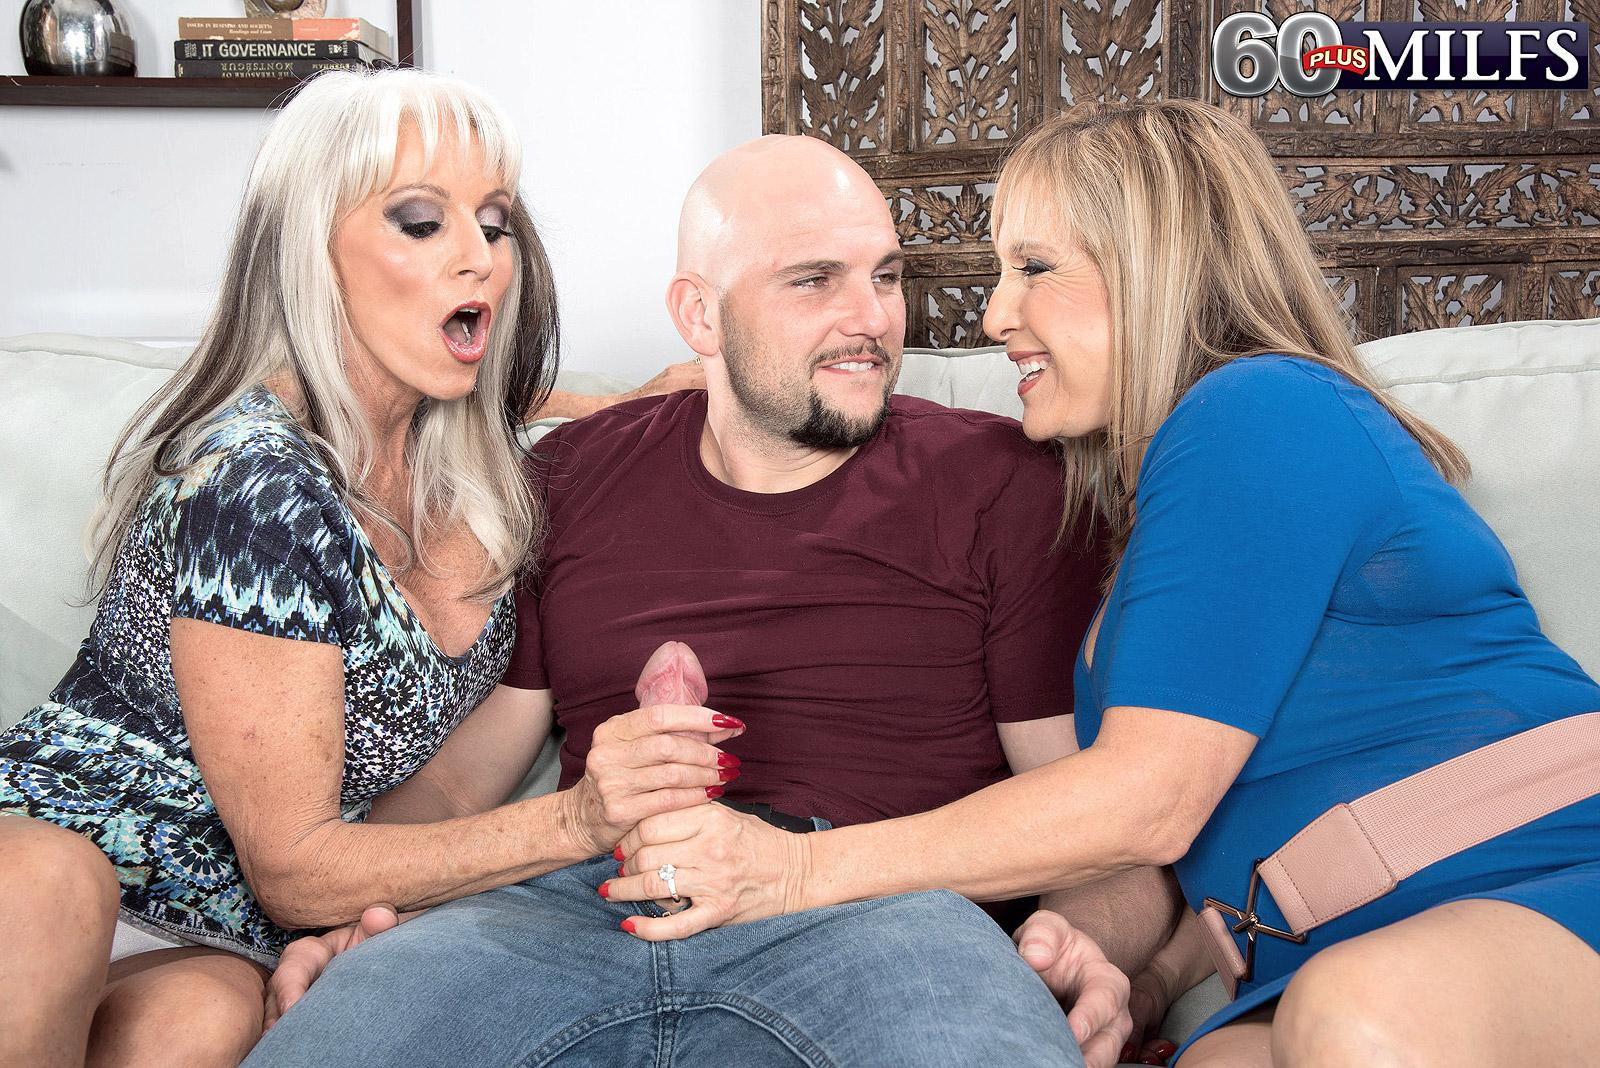 Mischievous 60 plus moms Sally D'Angelo and Luna Azul delivering massive hard-on oral pleasure in threeway